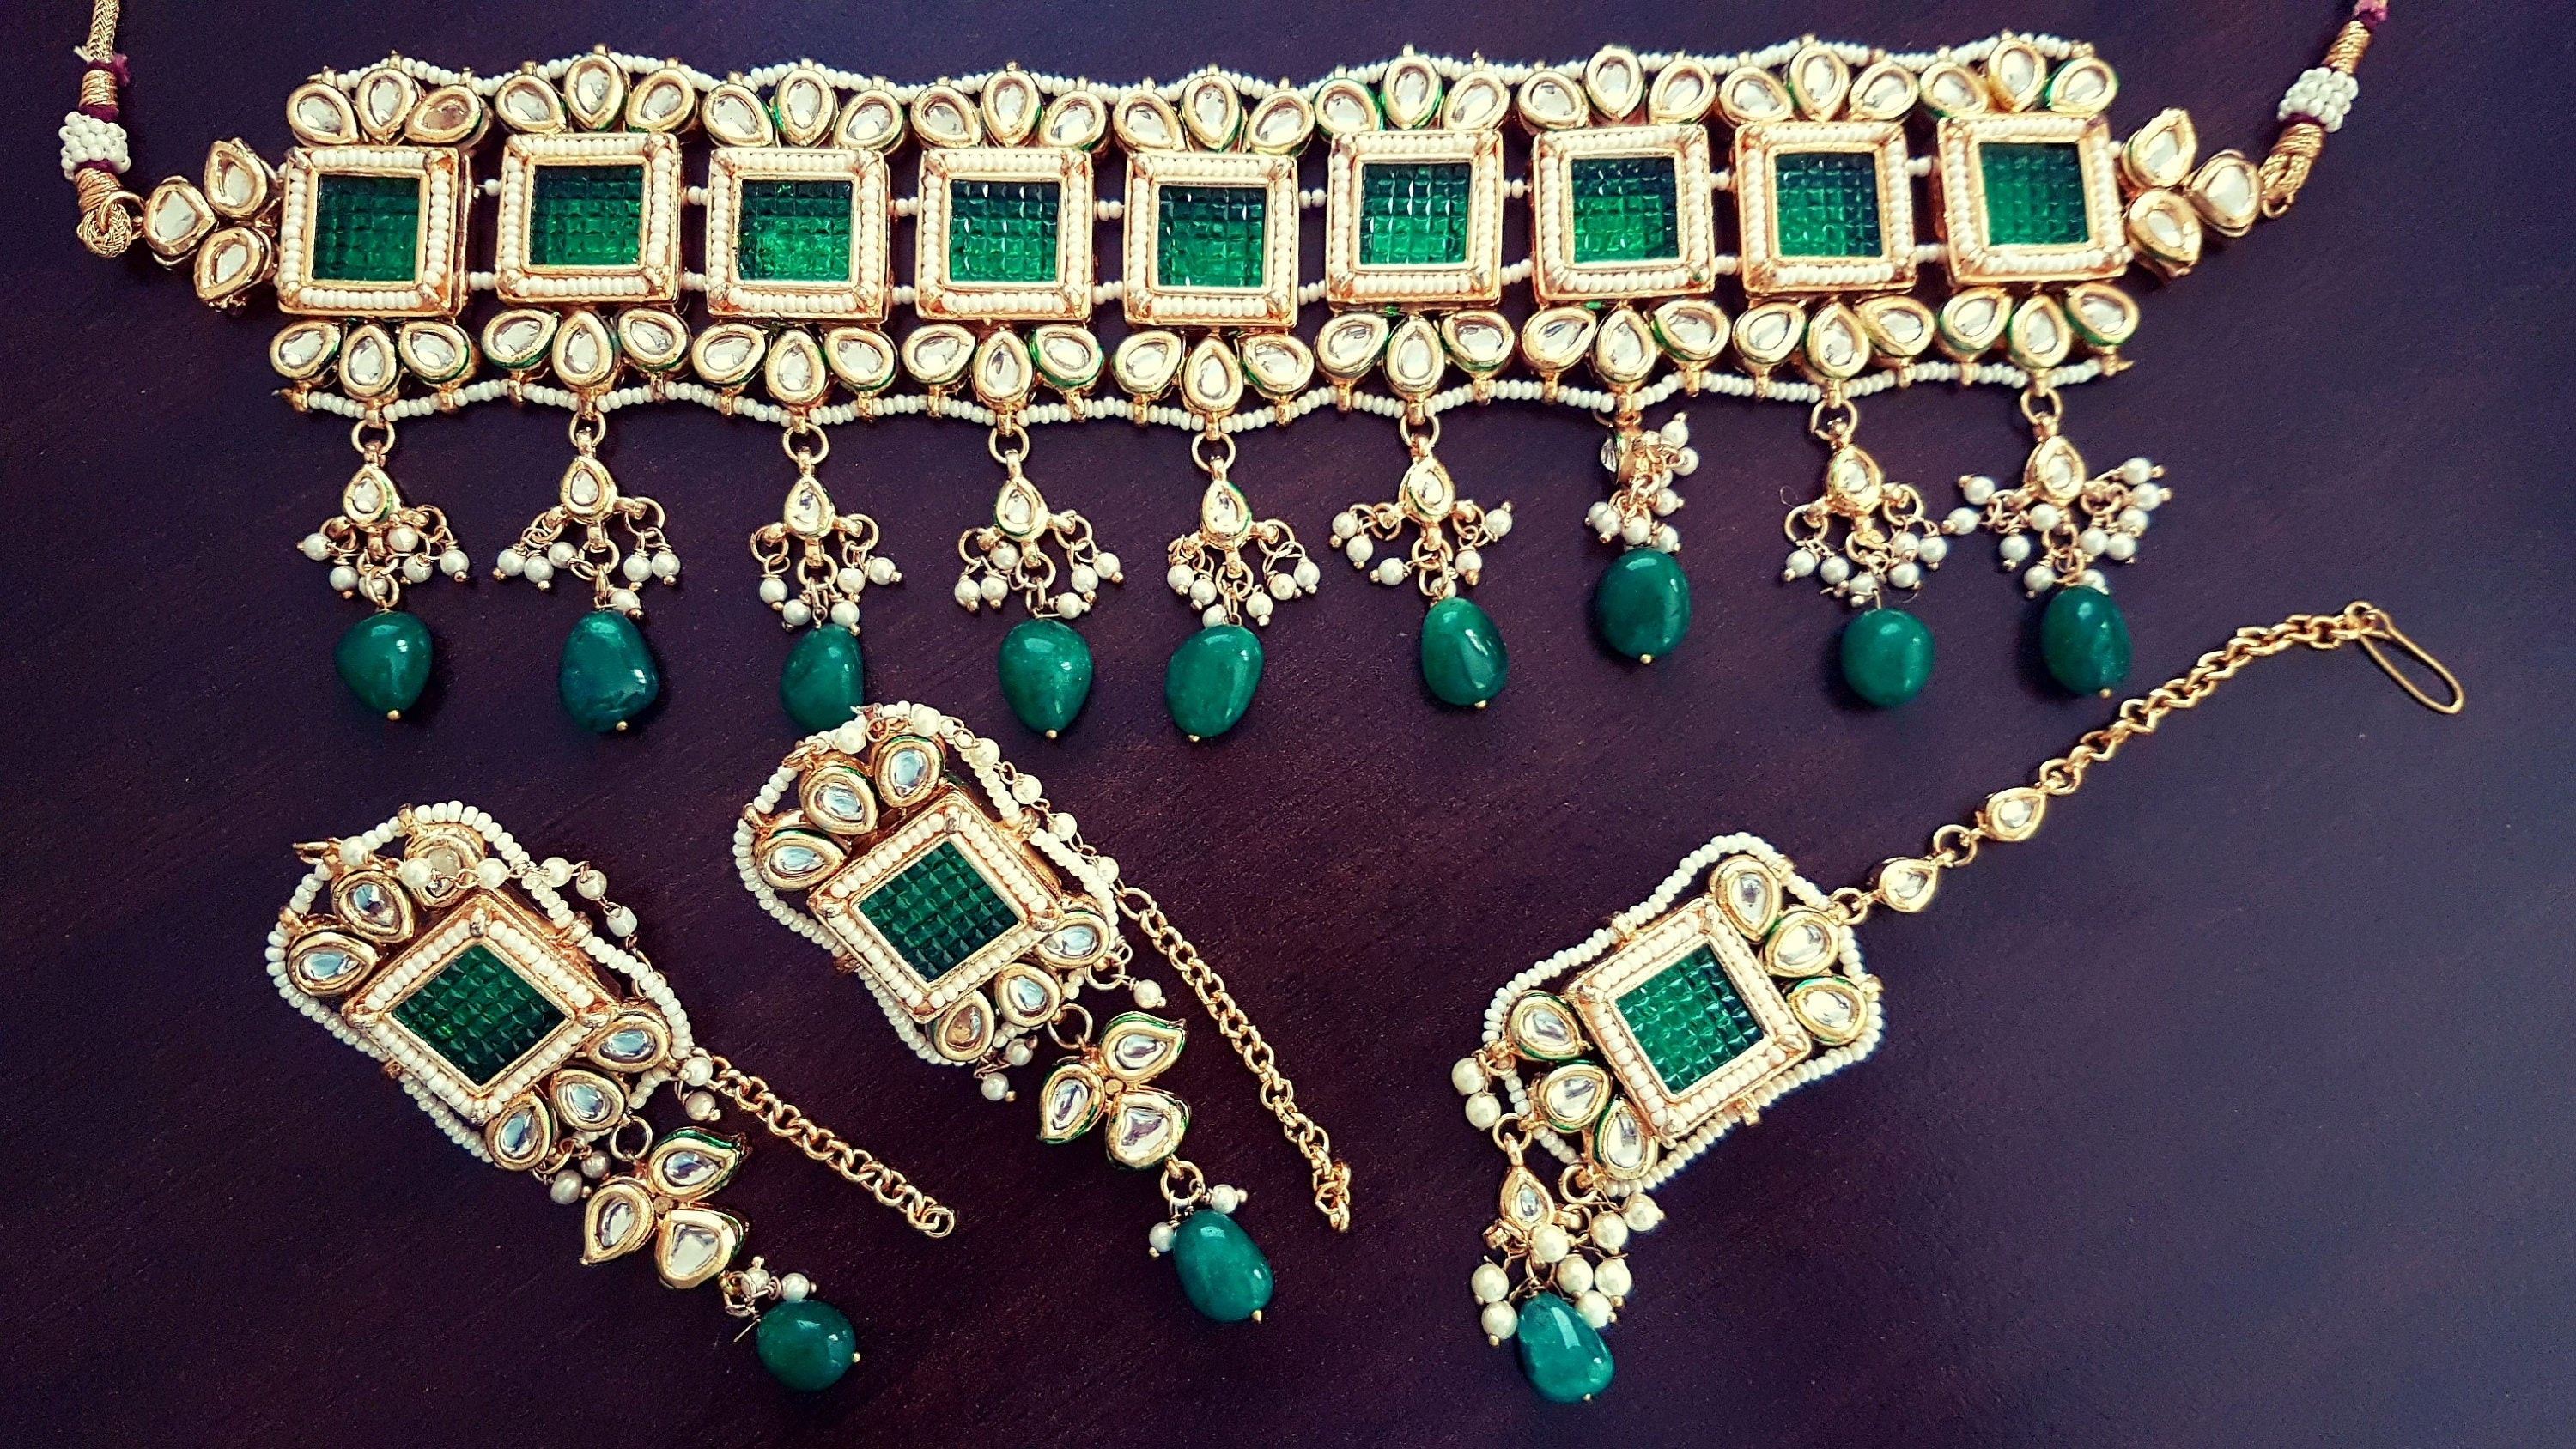 Gorgeous Indian green kundan bridal / non-bridal choker with mangtikka and earrings set with semi-precious stone beads - Pink Chunari